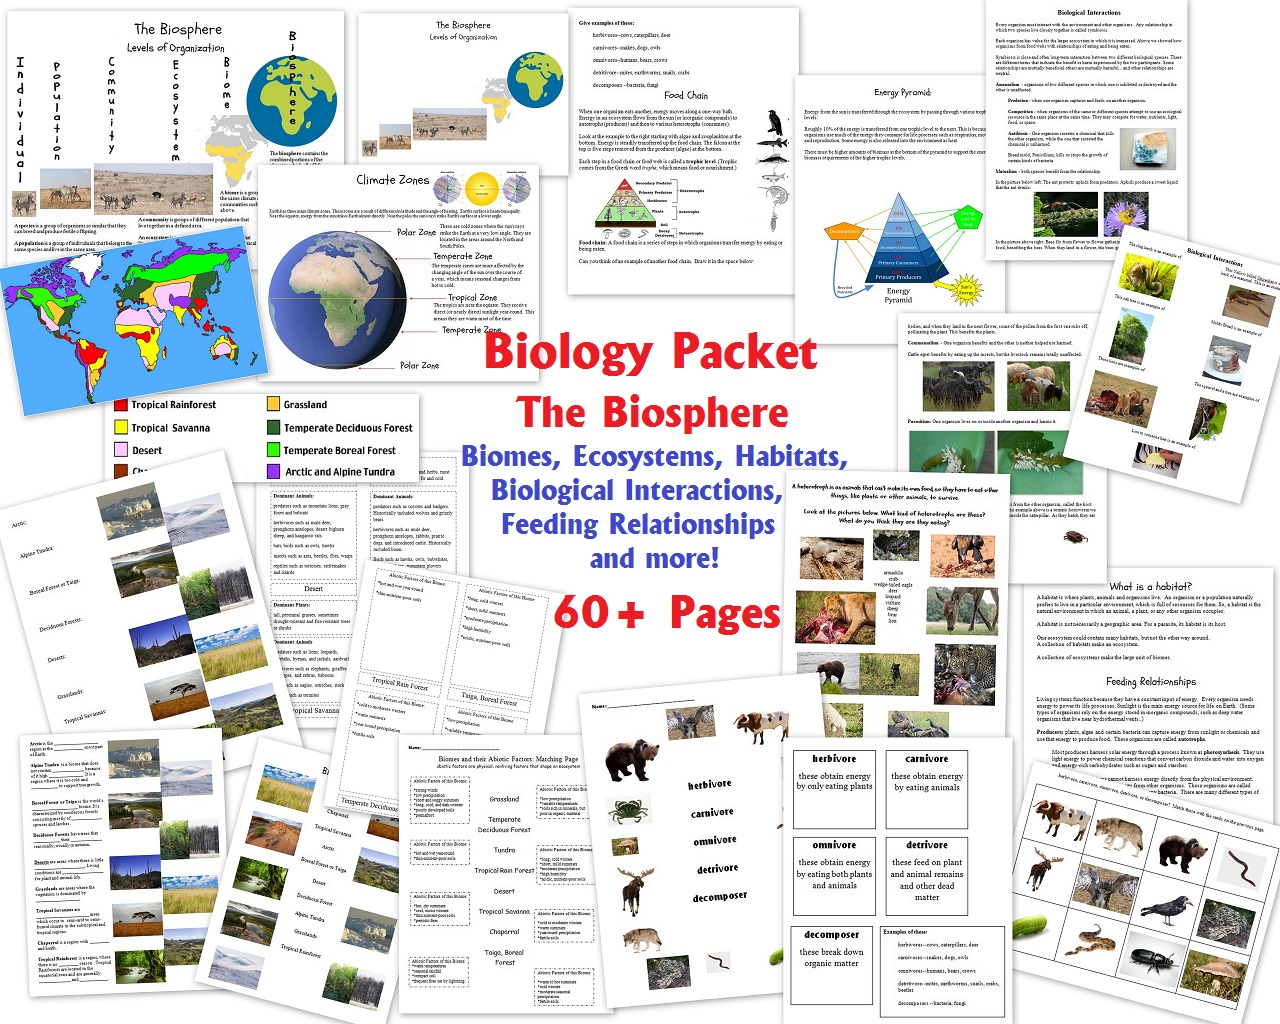 bio asesmnet unit 2 Biology unit 2 cell biology day 2: wednesday, jan 21 homework: read 74 pick   10 formative assessment organelle meet & greet use laminated organelle.